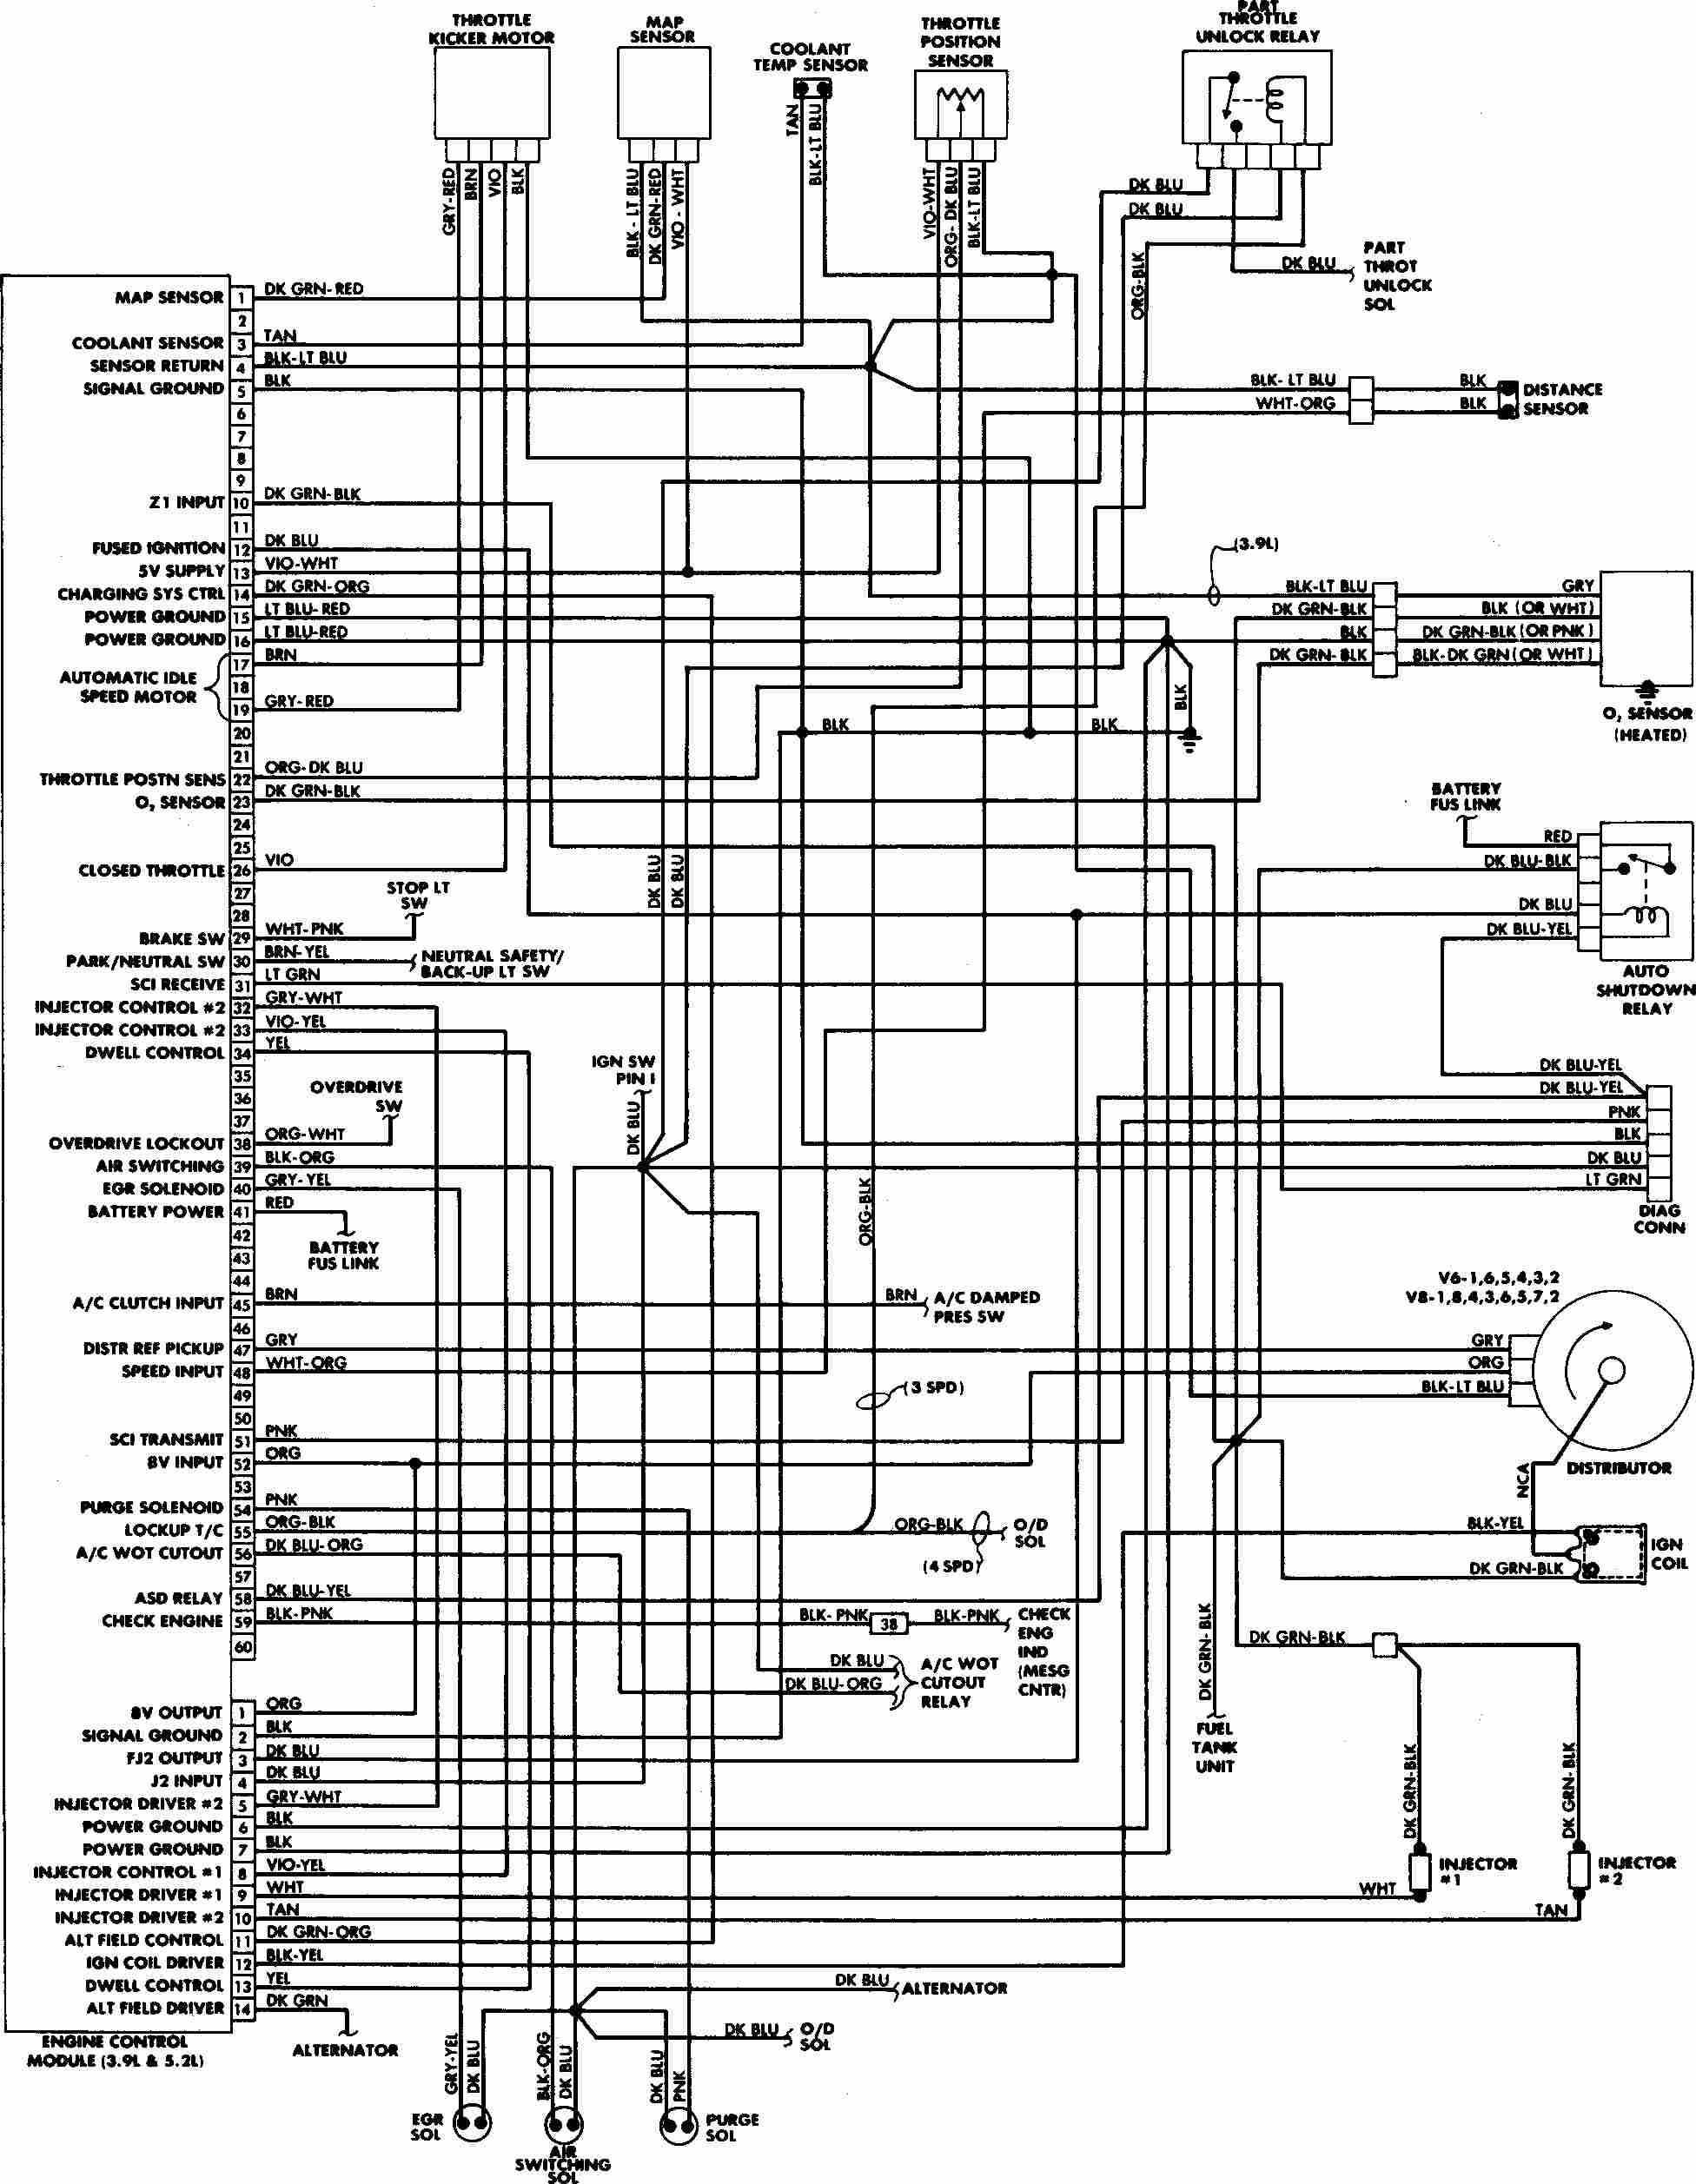 Obd2b Engine Harness Diagram Cl 1 Wiring Diagram Wiring Diagrams ...